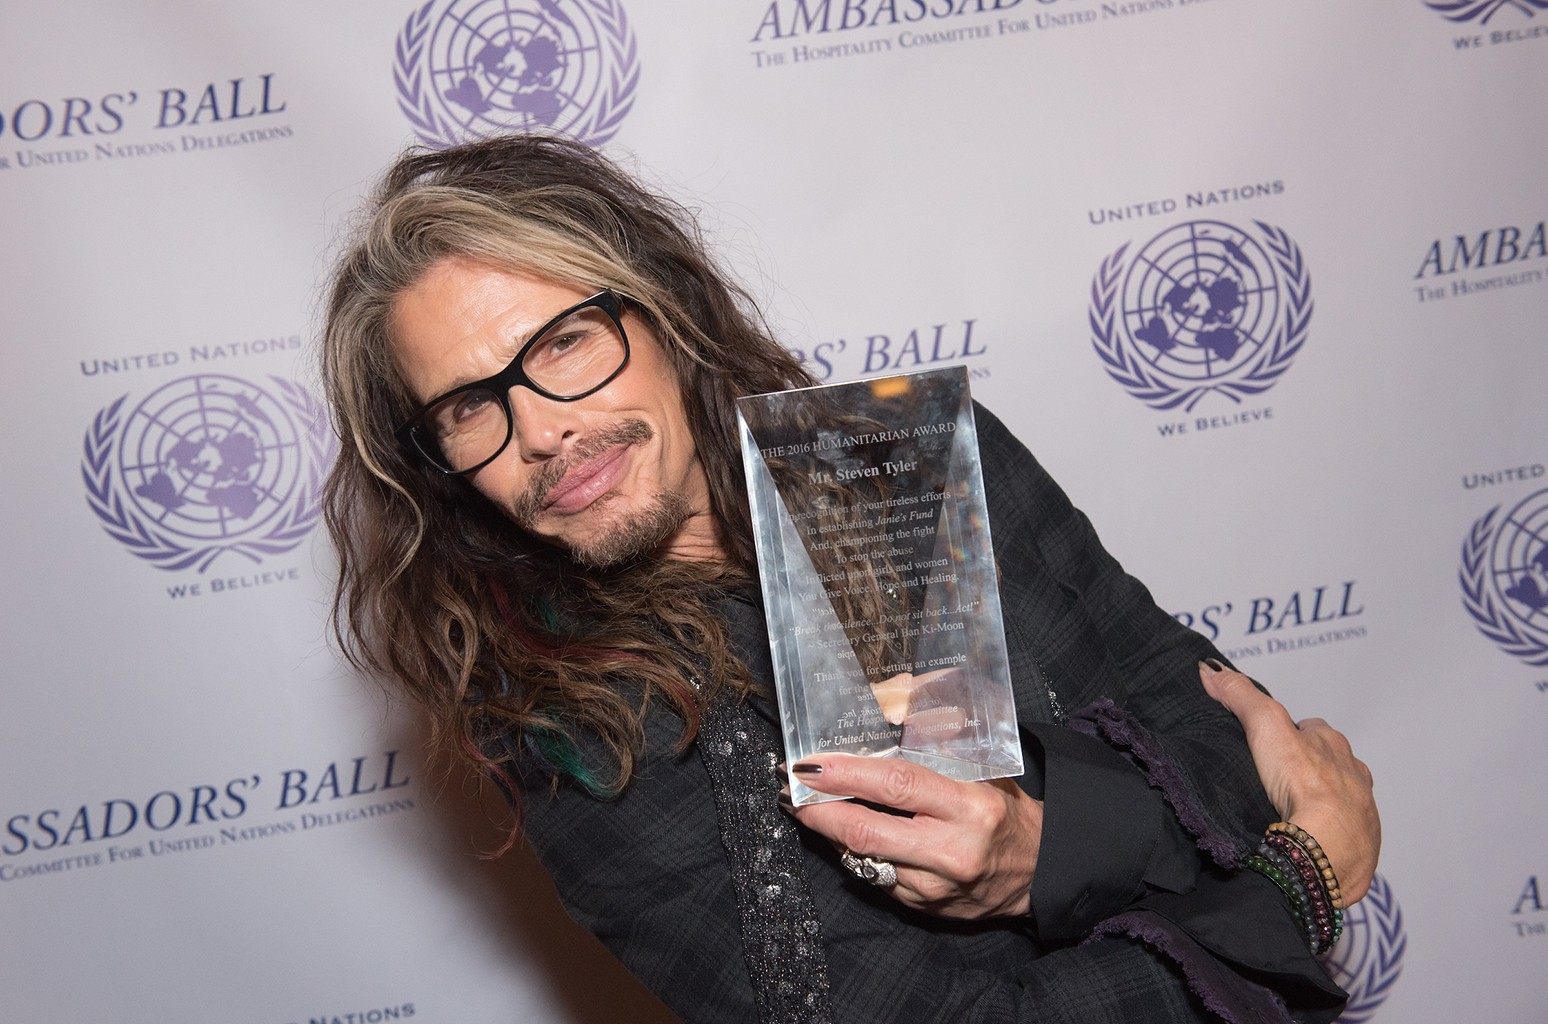 Steven Tyler at The Hospitality Committee For United Nations Delegations